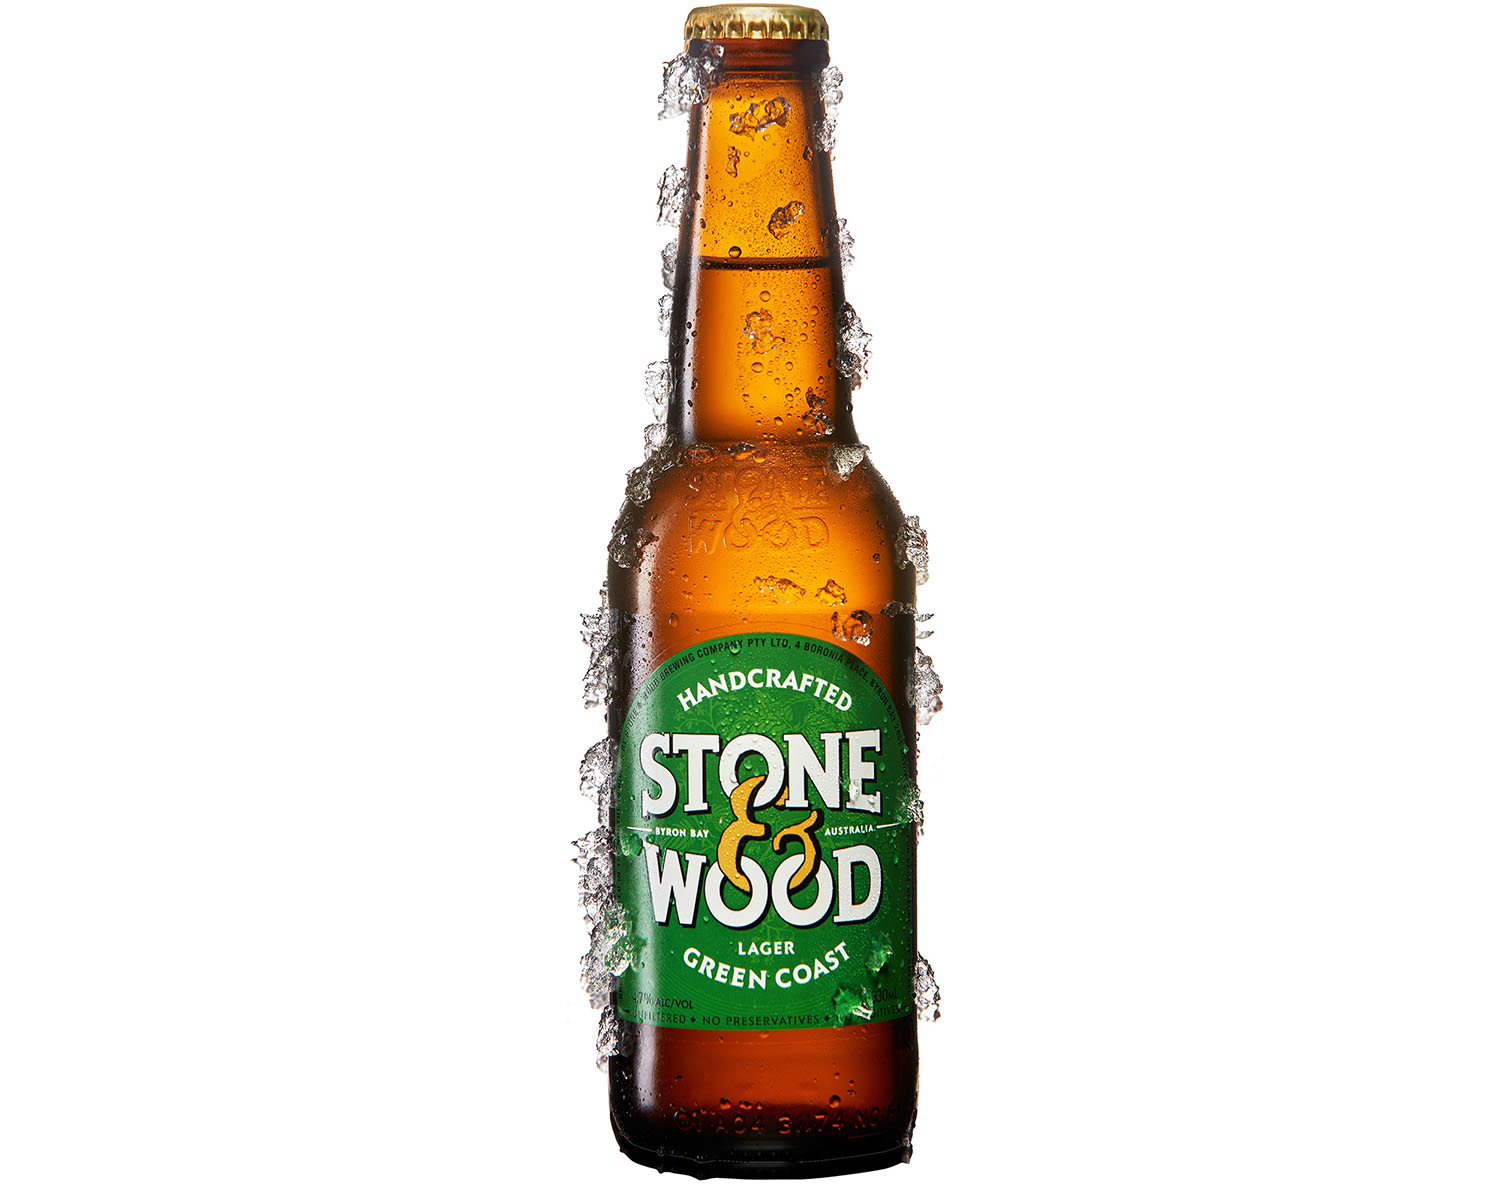 Stone_Wood_Lager_iced_1500w.jpg